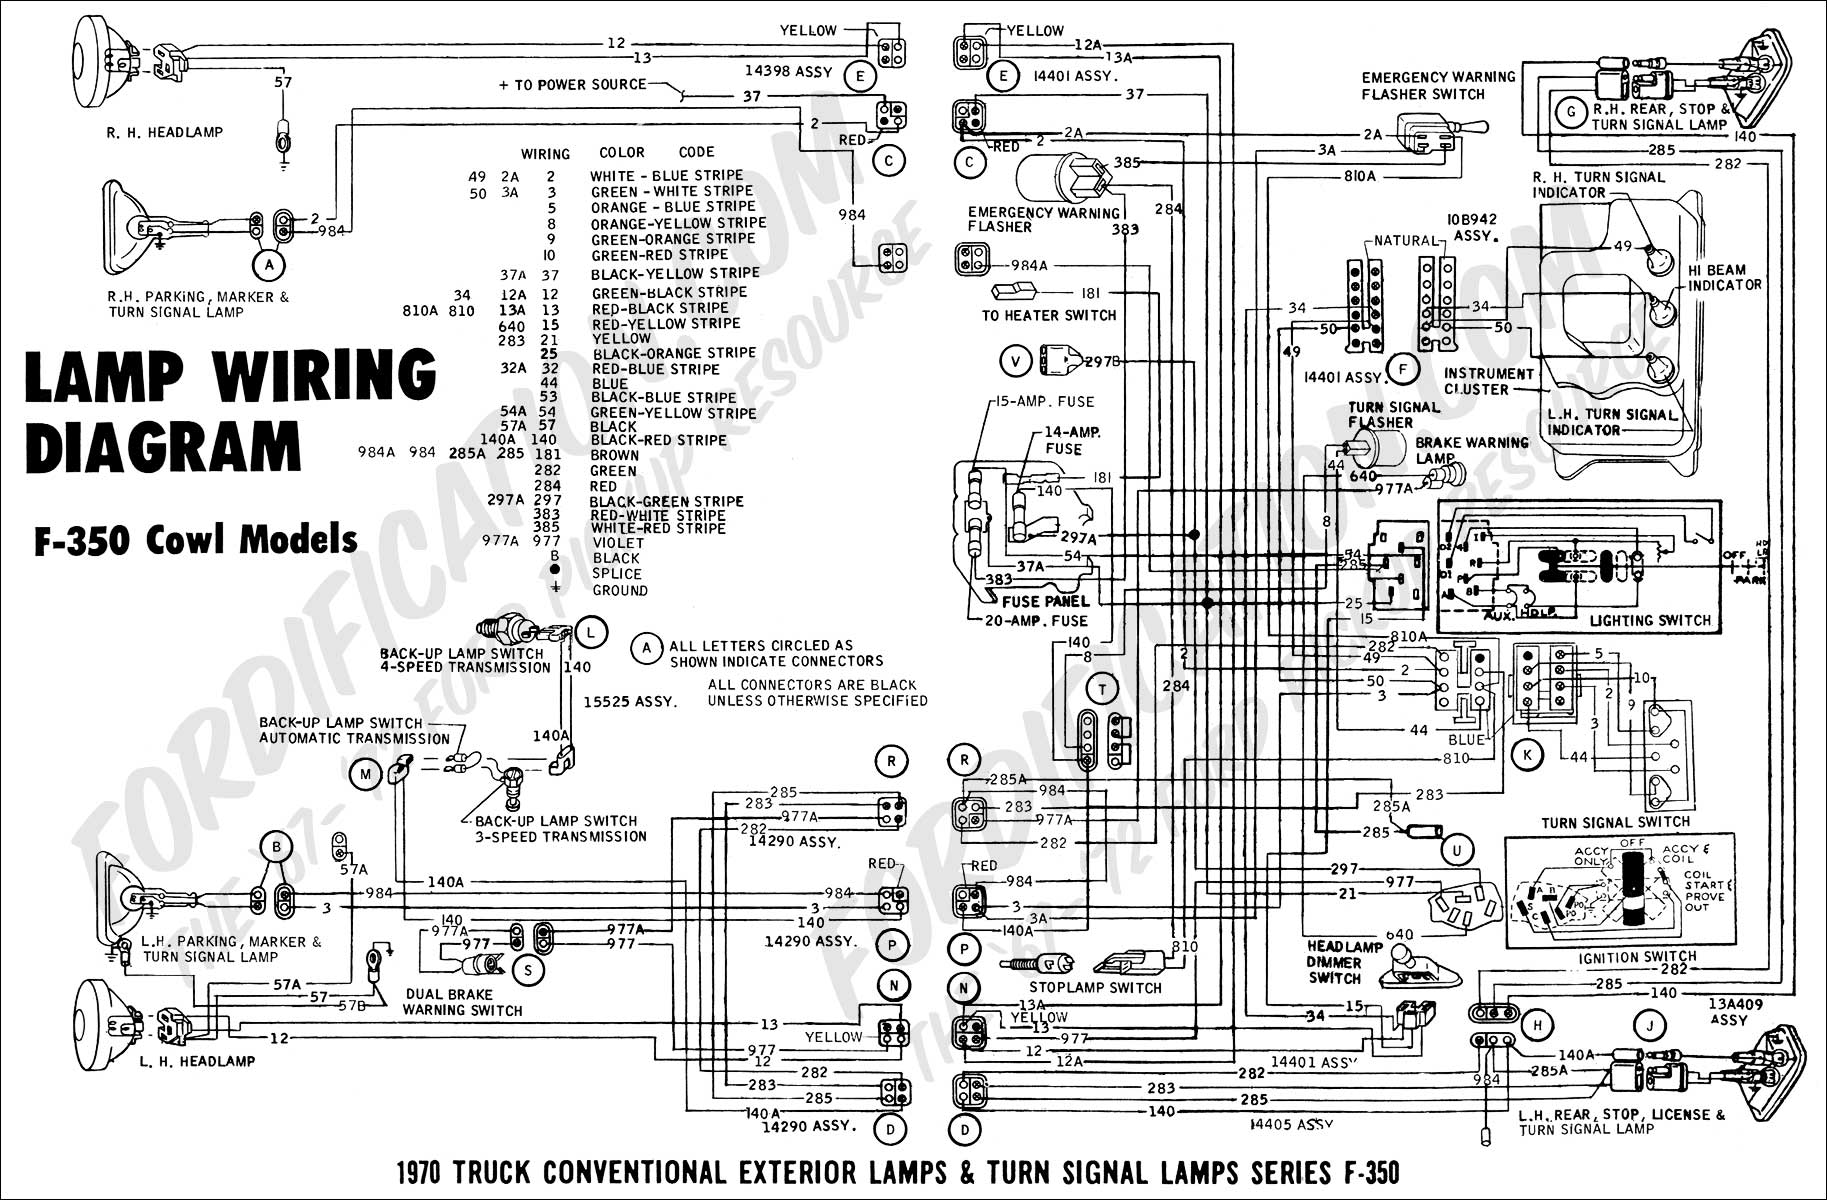 459069 Sc300 Kick Panel Fuse Diagram Picture 2 also Toyota Power Steering Pump Location in addition W203 Radio Wiring Diagram as well Assembly Chevy Tahoe Parts List further 89 Chevy Truck Power Window Wiring Diagram. on toyota tail light wiring diagram